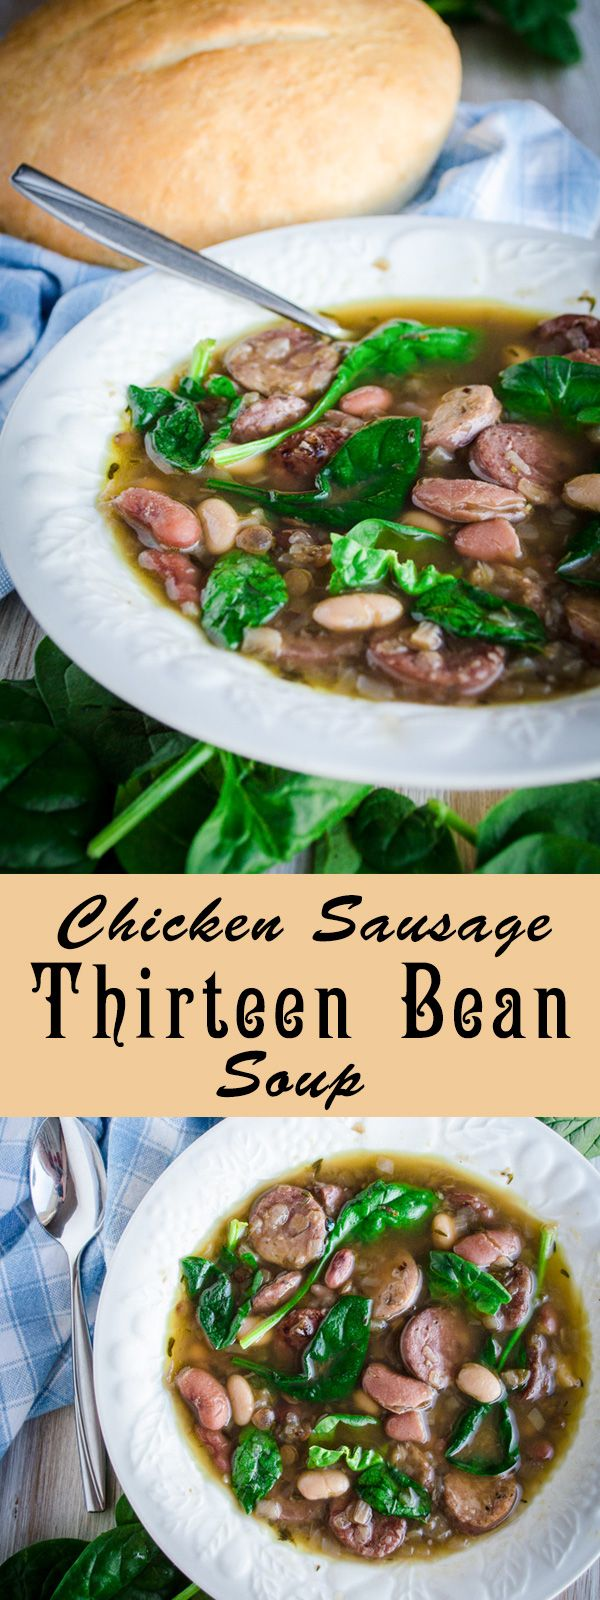 This 13 bean soup is a savory mixture of healthy high-fiber beans, protein filled chicken, and vitamin rich baby spinach. This recipe is where delicious and healthy come together for a win-win meal!